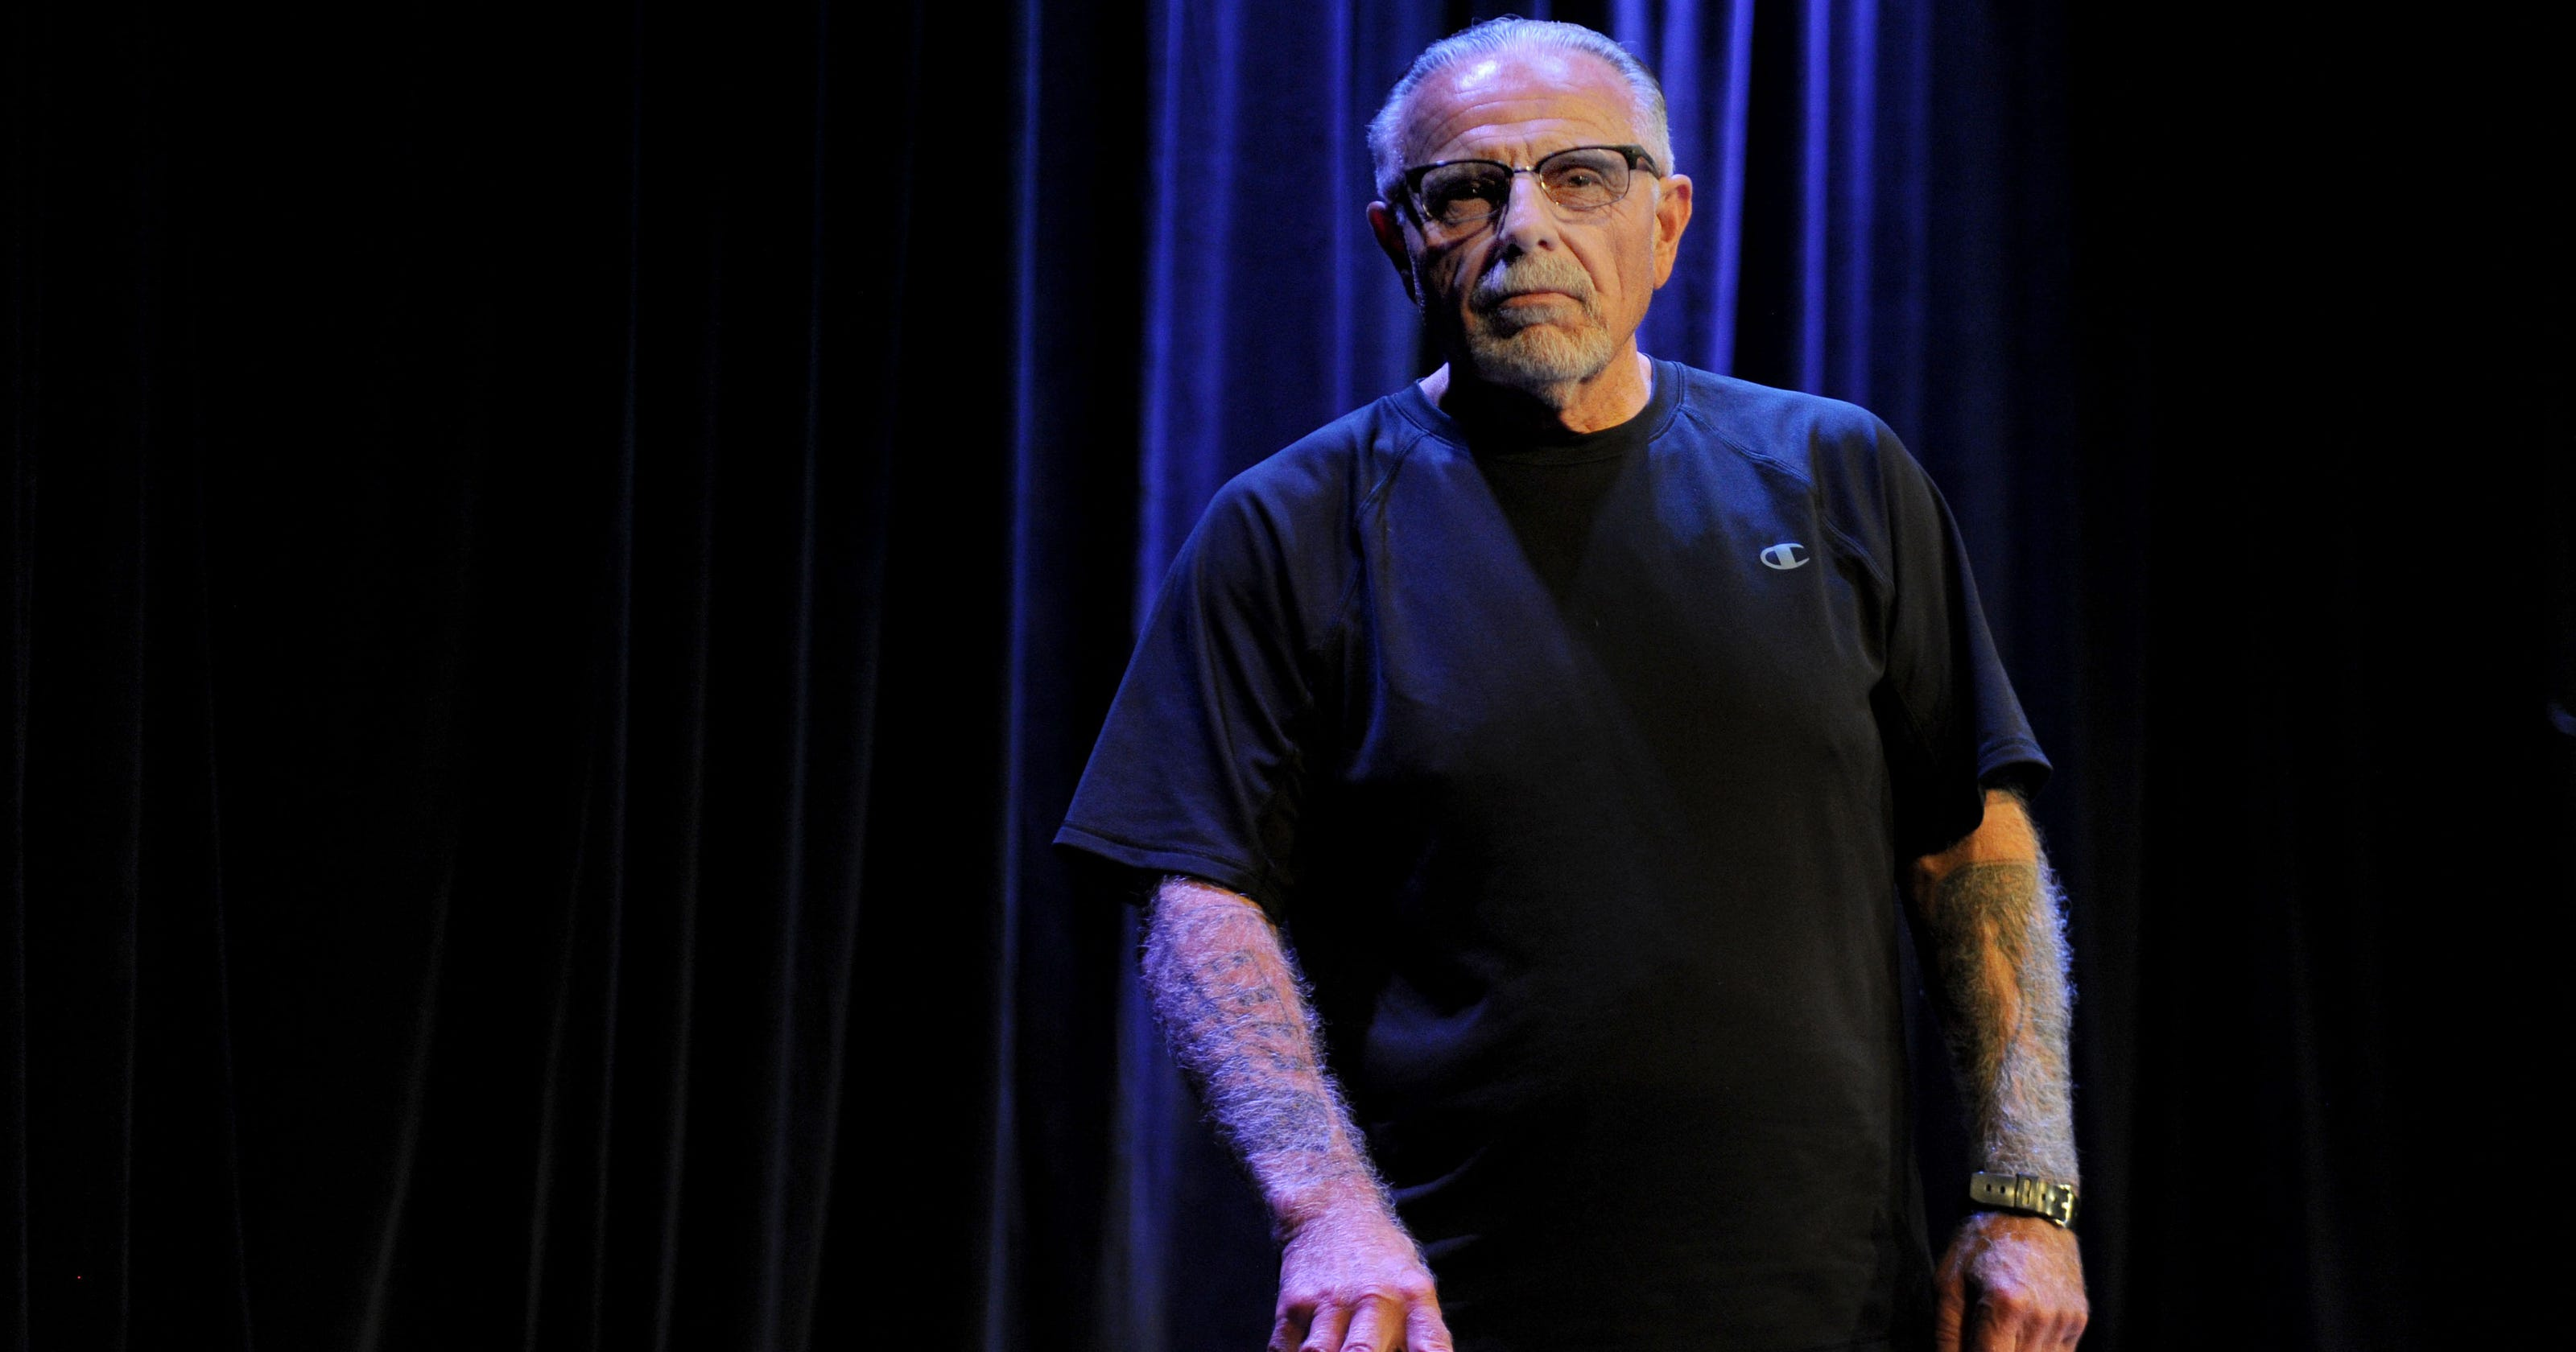 Ex-Hells Angels leader shares his life story at the Rubicon